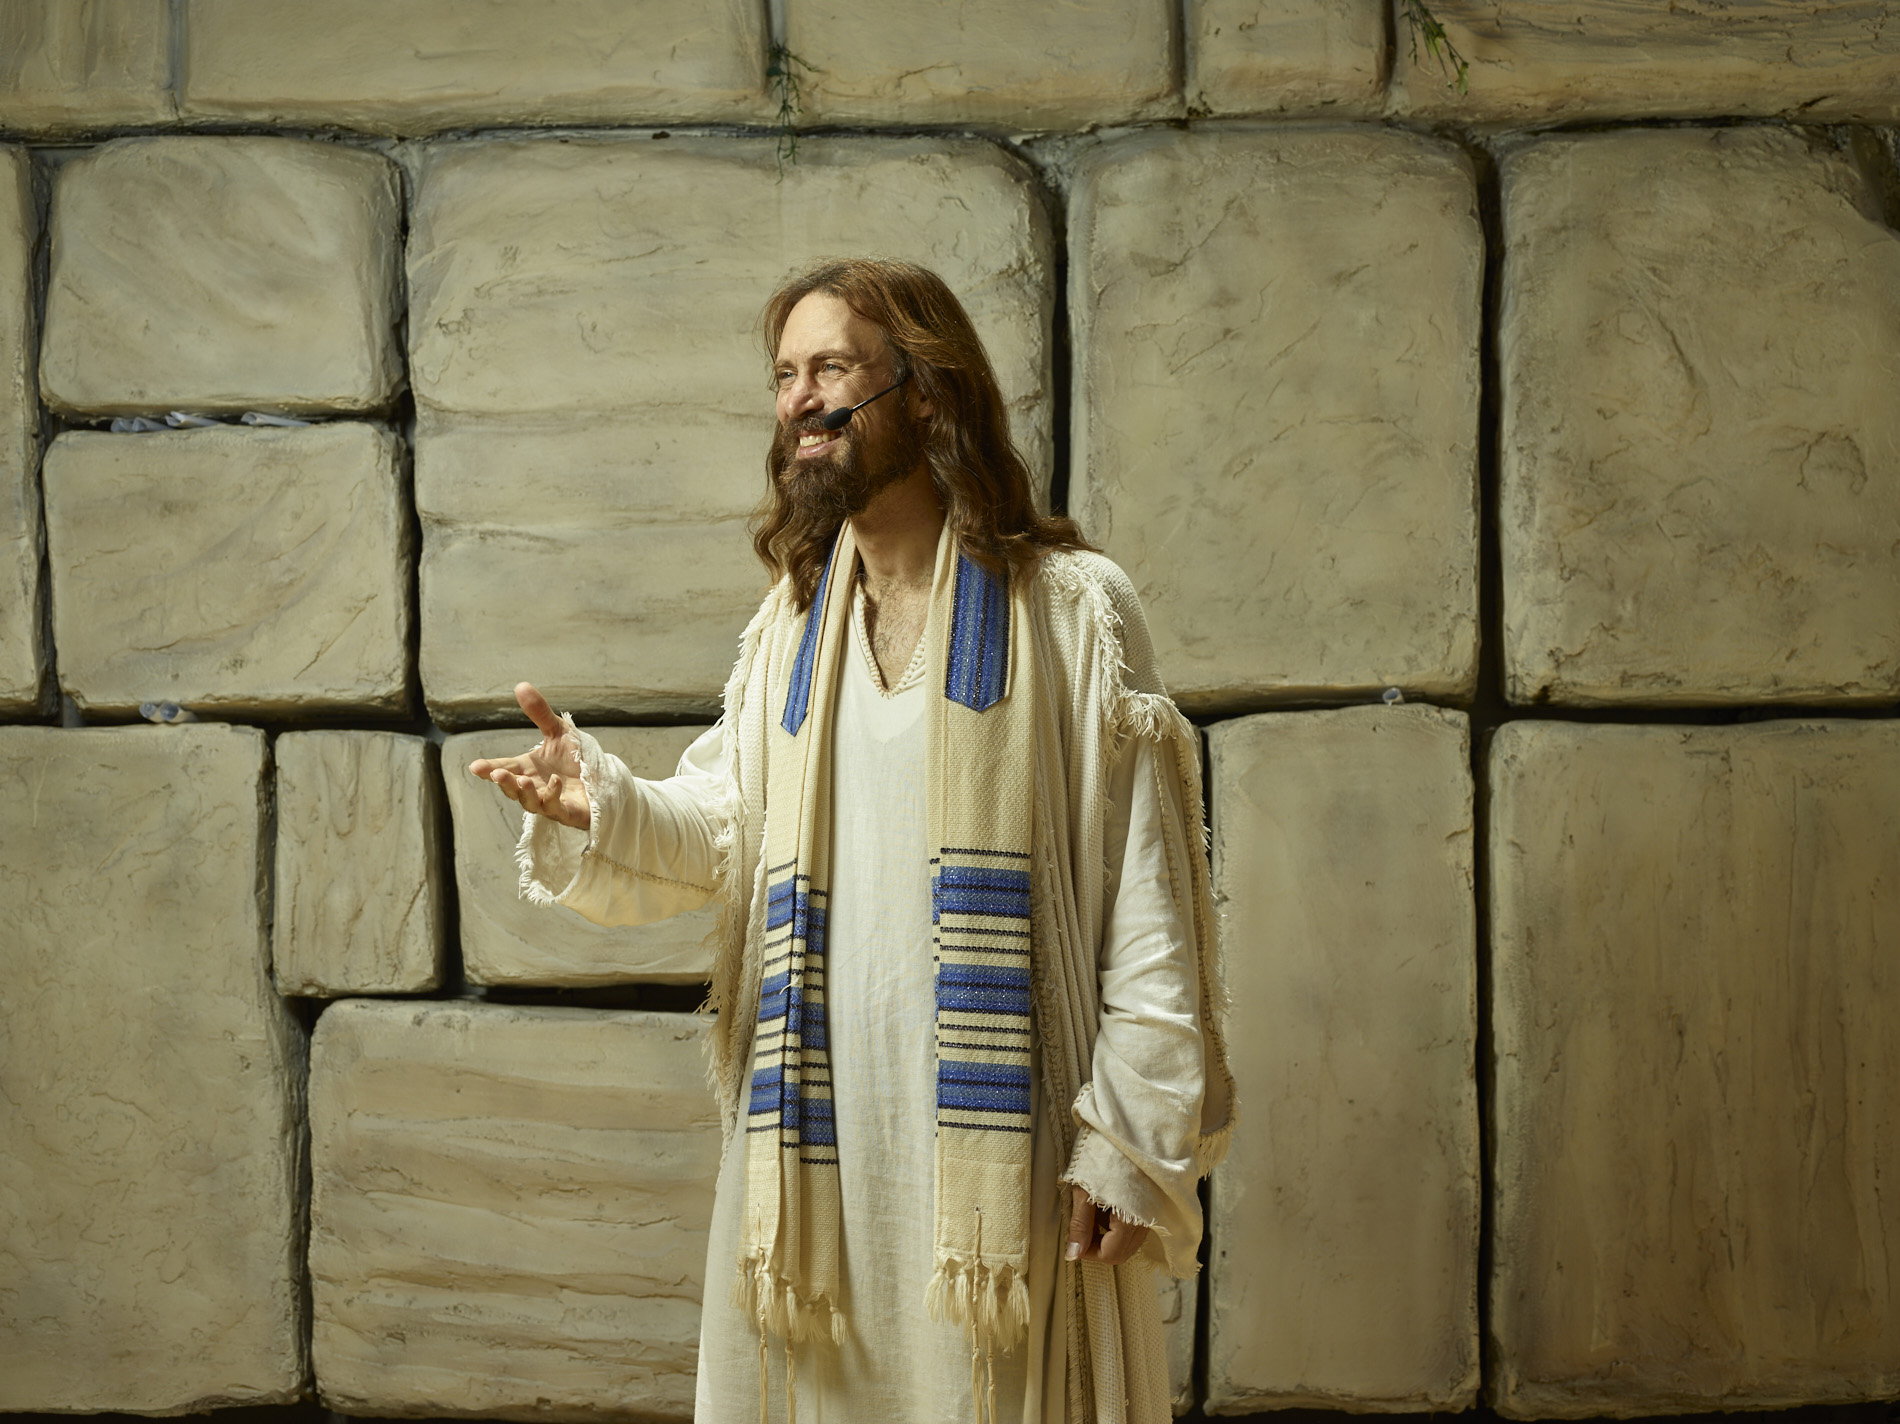 Michael Job as Jesus for National Geographic